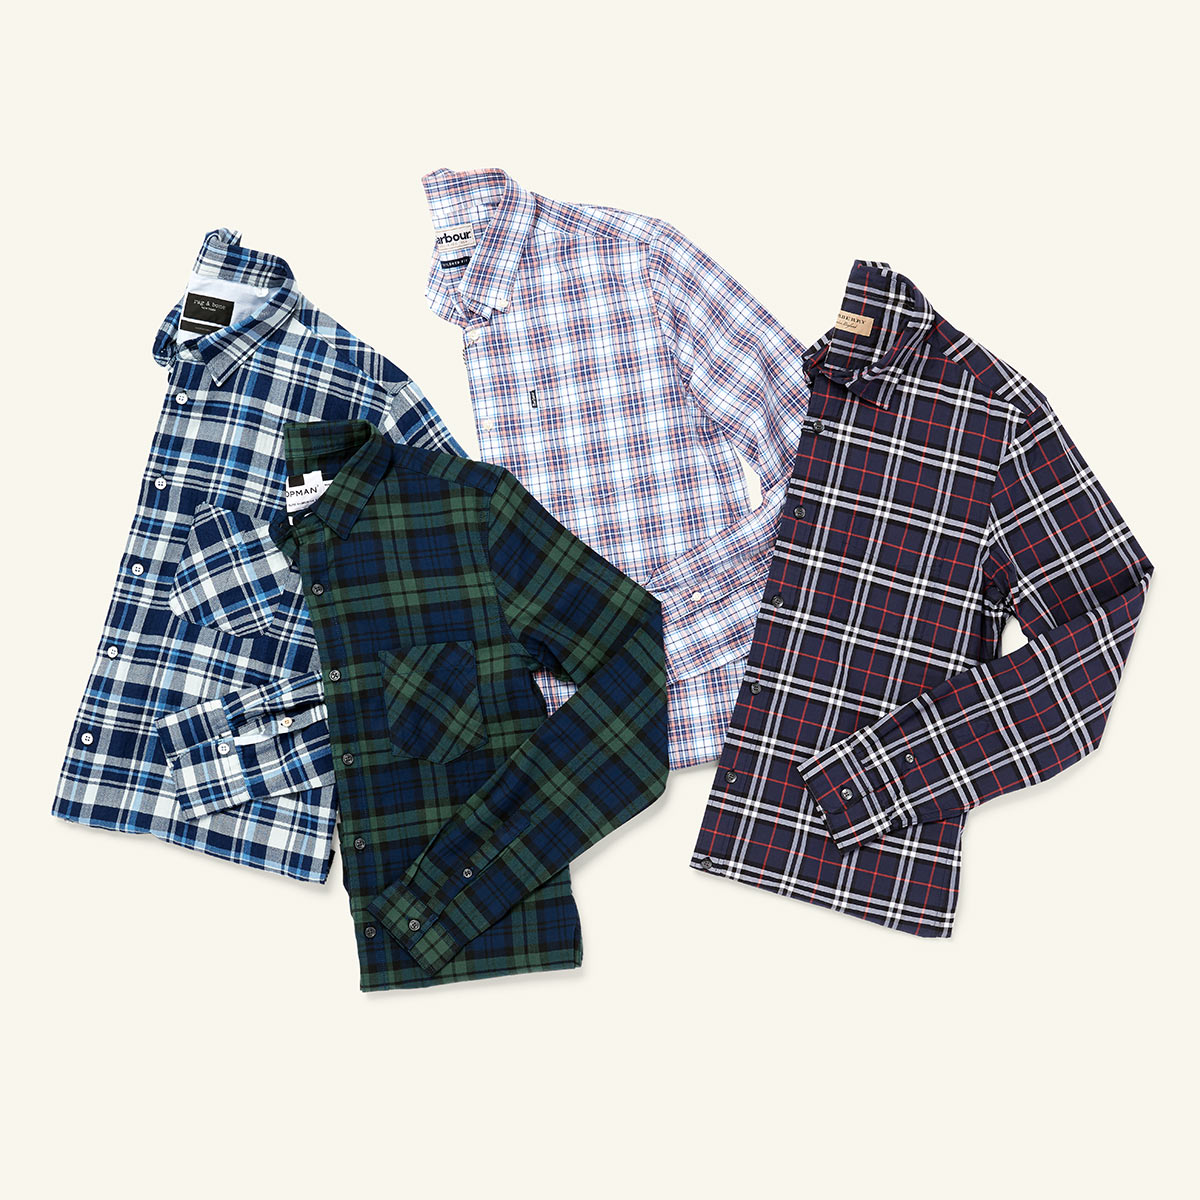 Four plaid men's shirts laid flat on a white background.